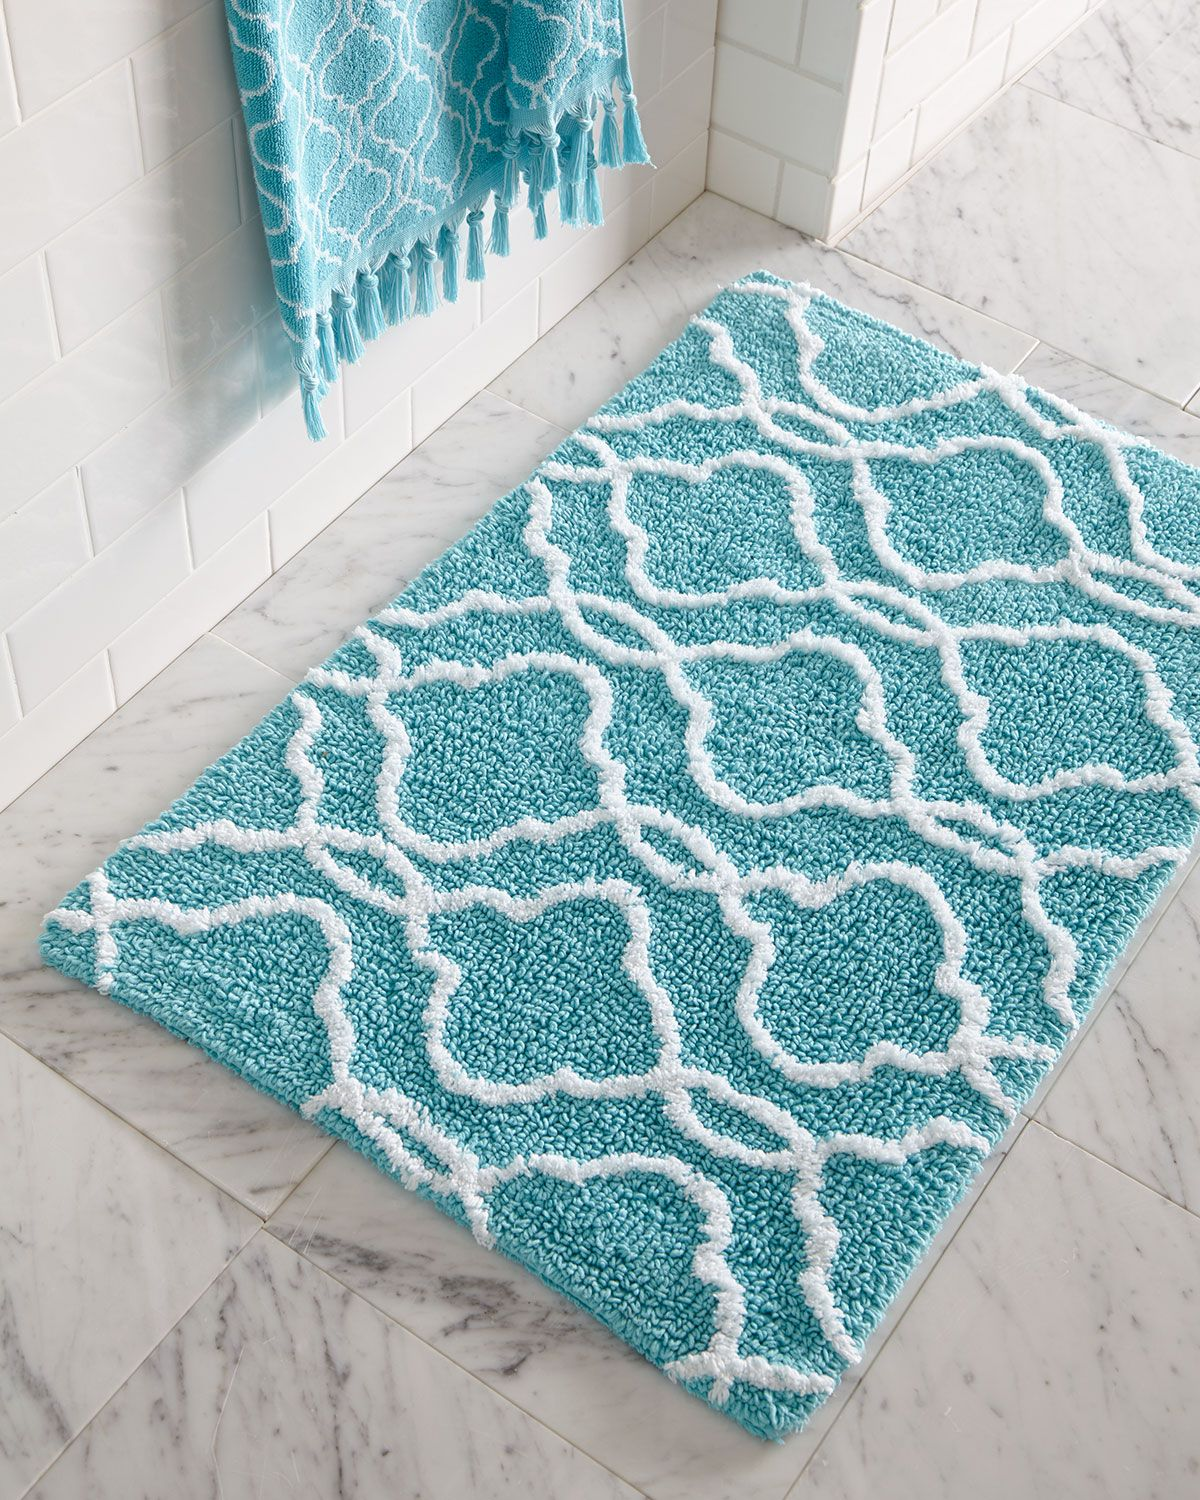 Tangiers Bath Rug Bath Rugs Bath And Turquoise - Turquoise bath rugs for bathroom decorating ideas